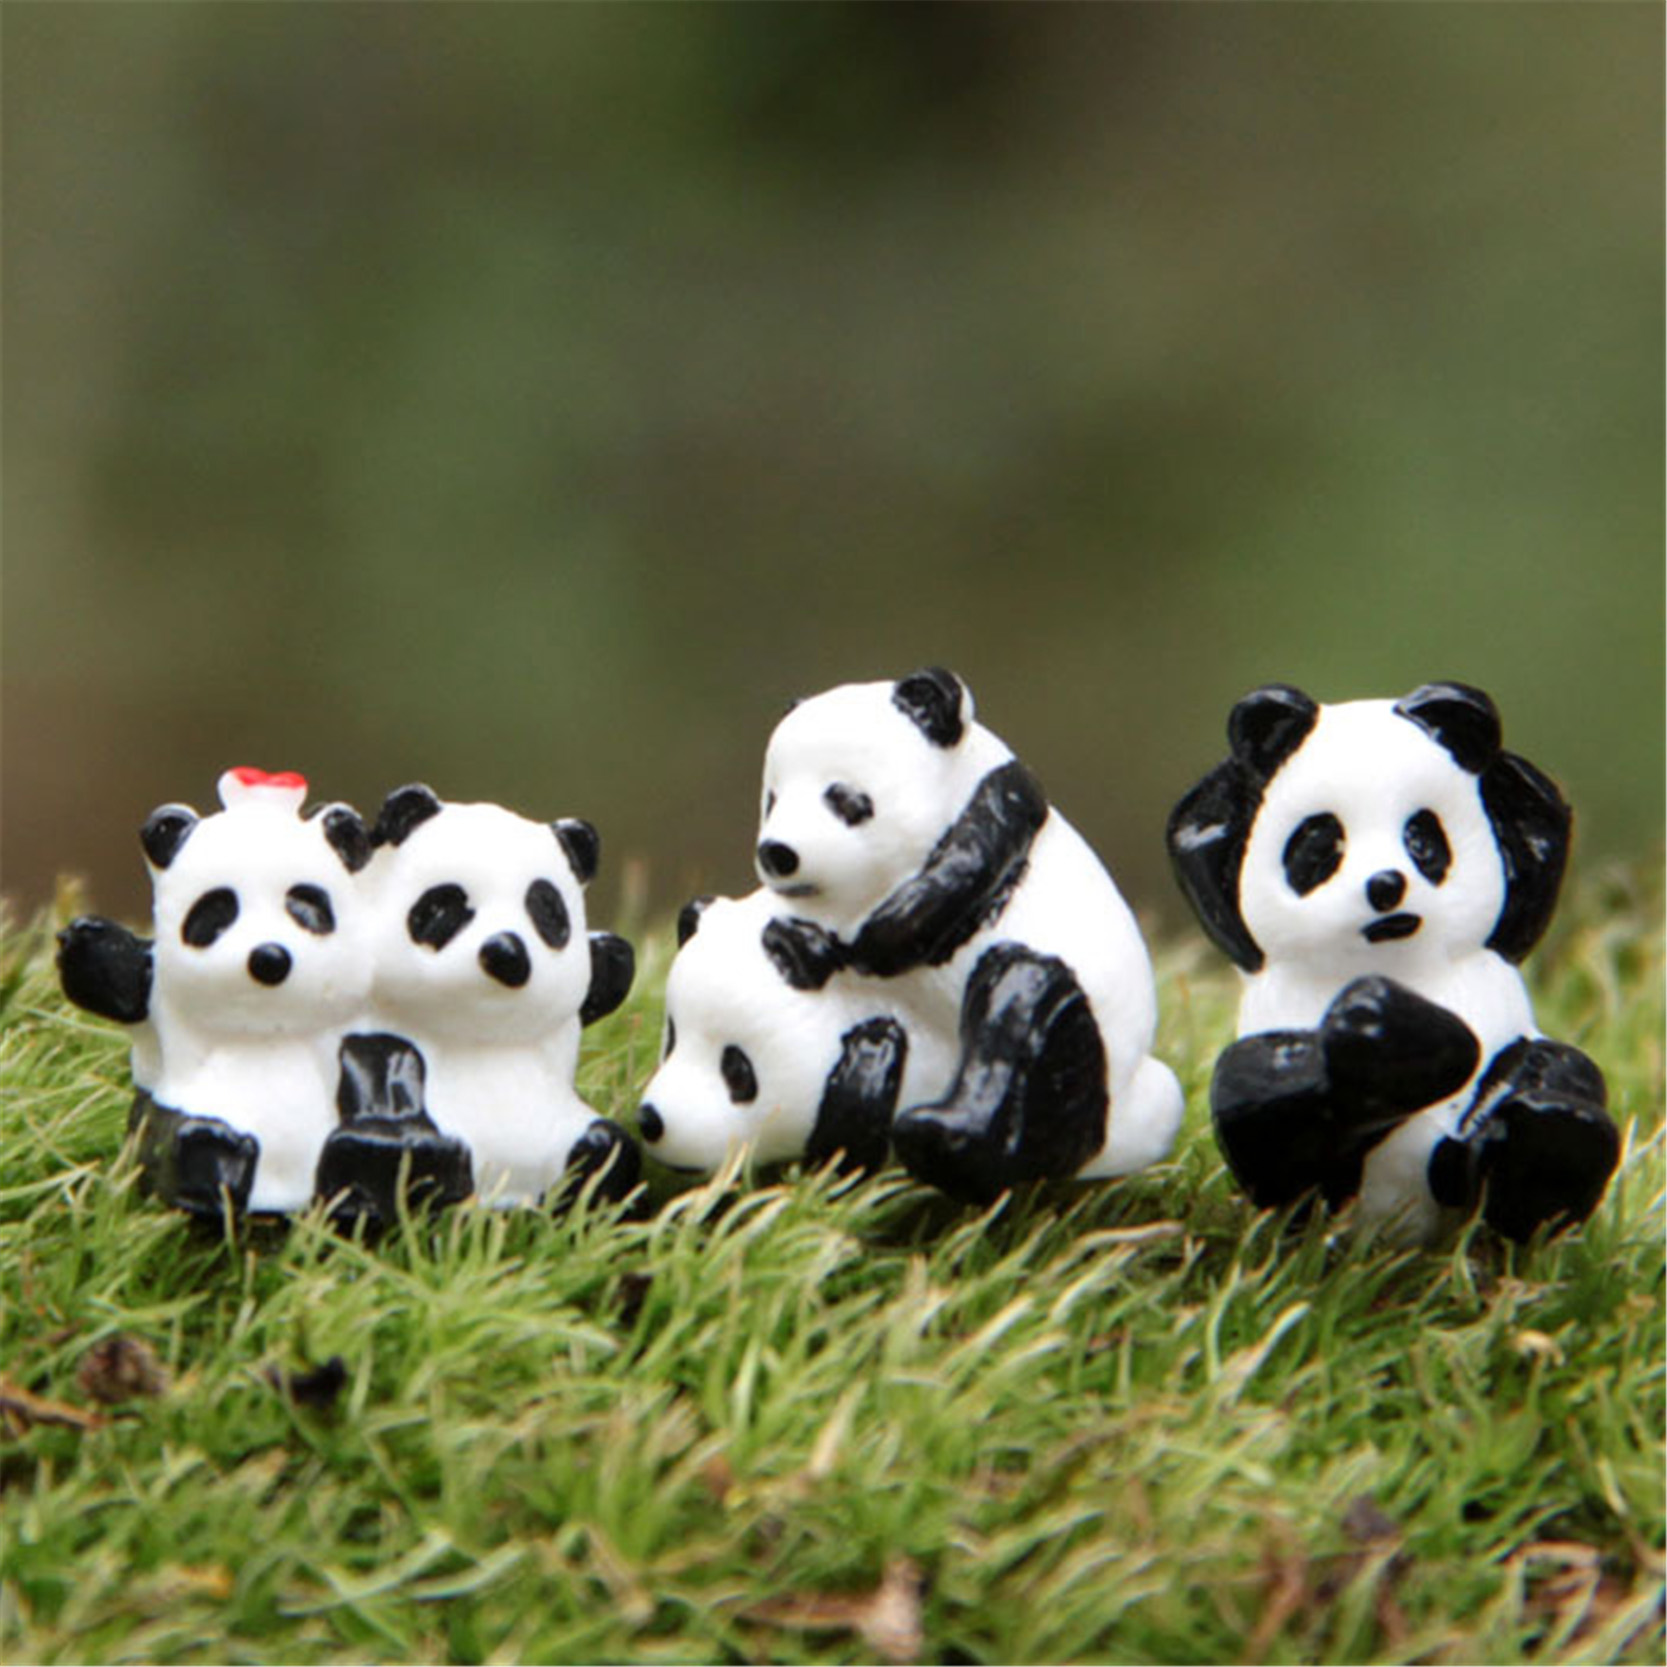 Buy Doll Furnishing Articles Resin Crafts Home Decoration: Online Buy Wholesale Panda Figurines From China Panda